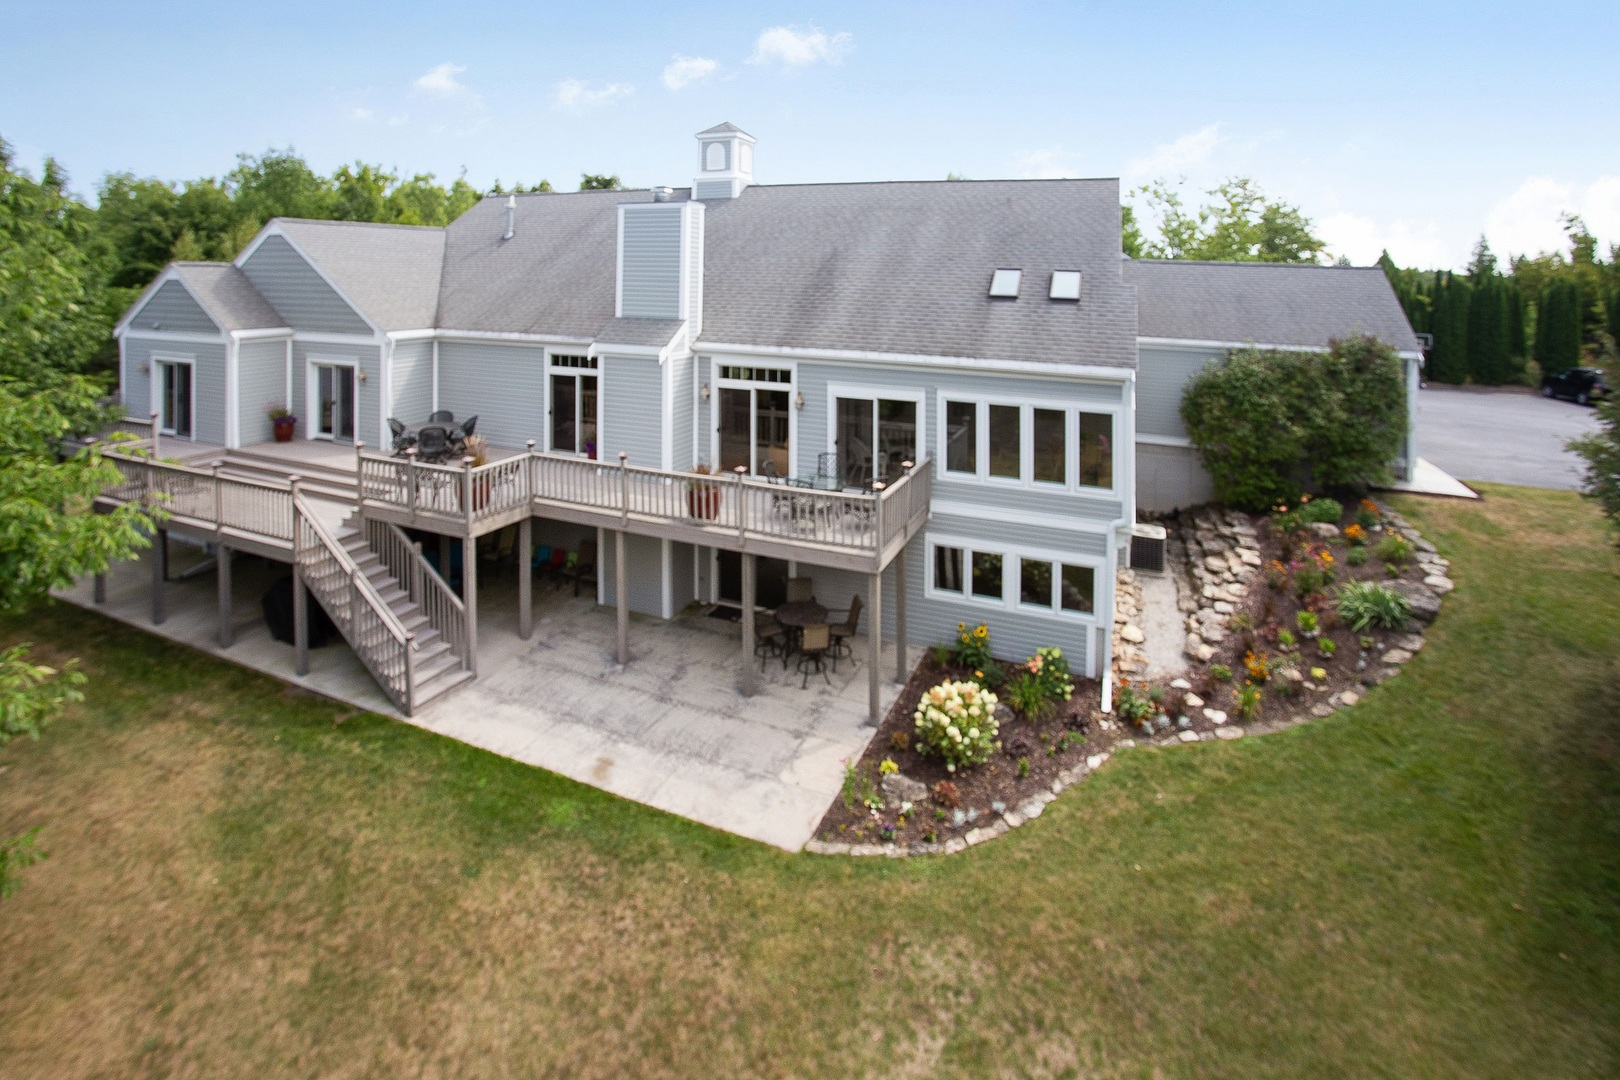 10315 Orchard ,Sister Bay, Wisconsin 54234